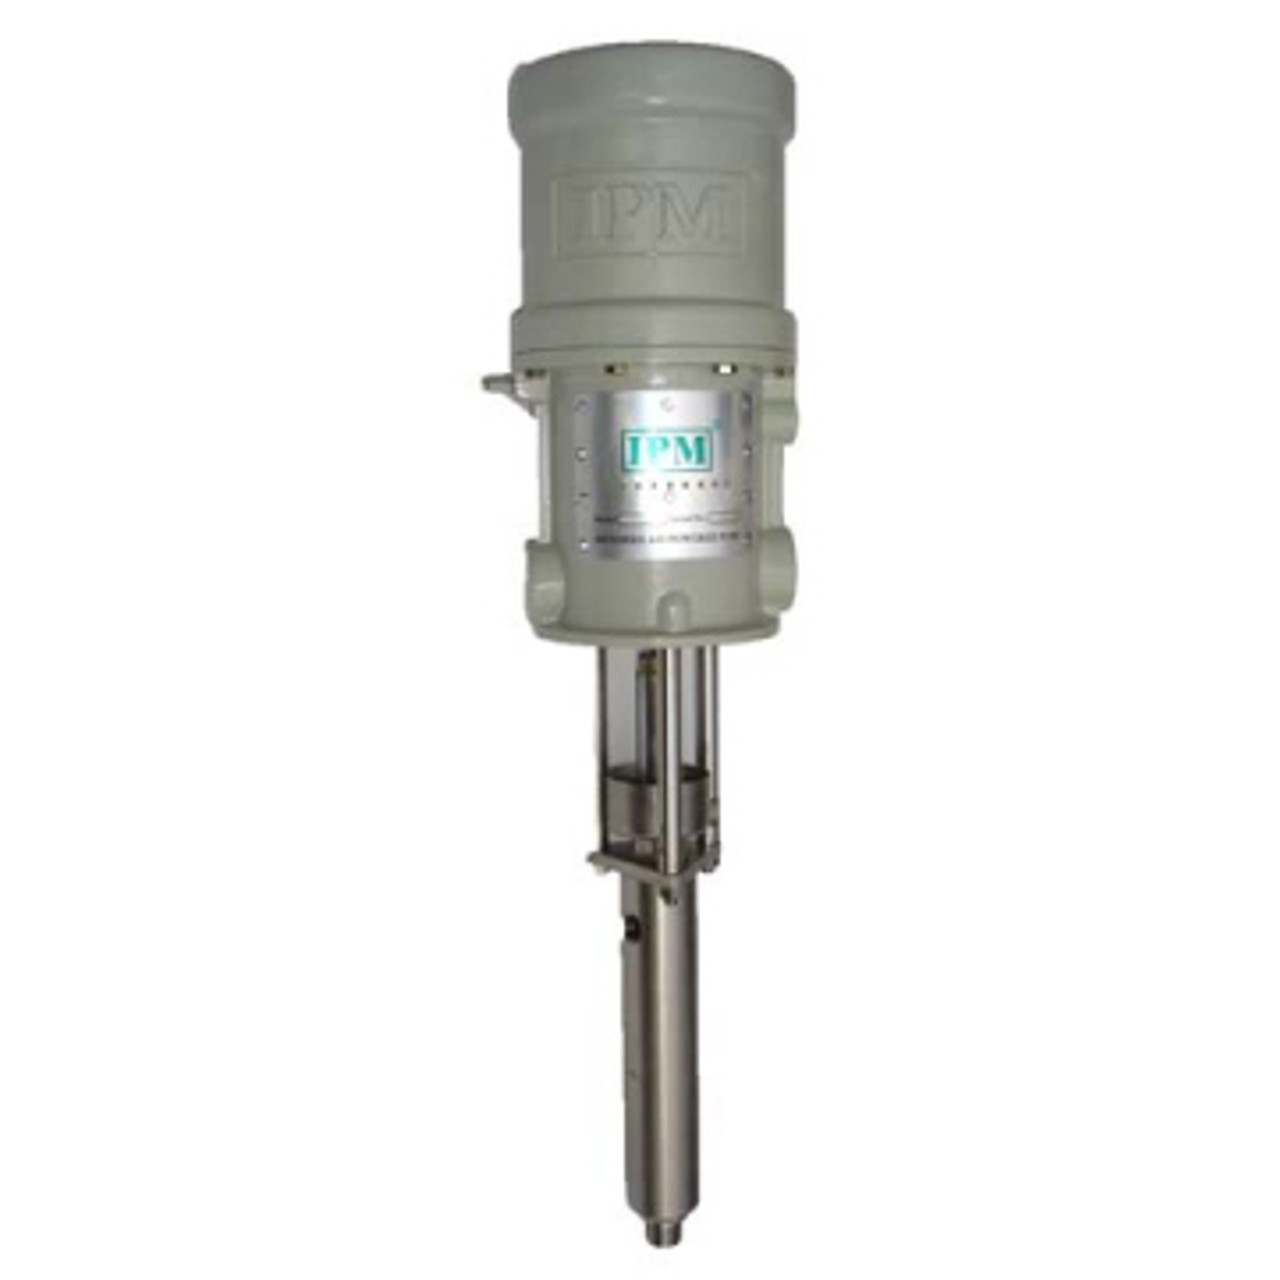 IPM IP-10 Transfer Pump (10:1 Ratio)